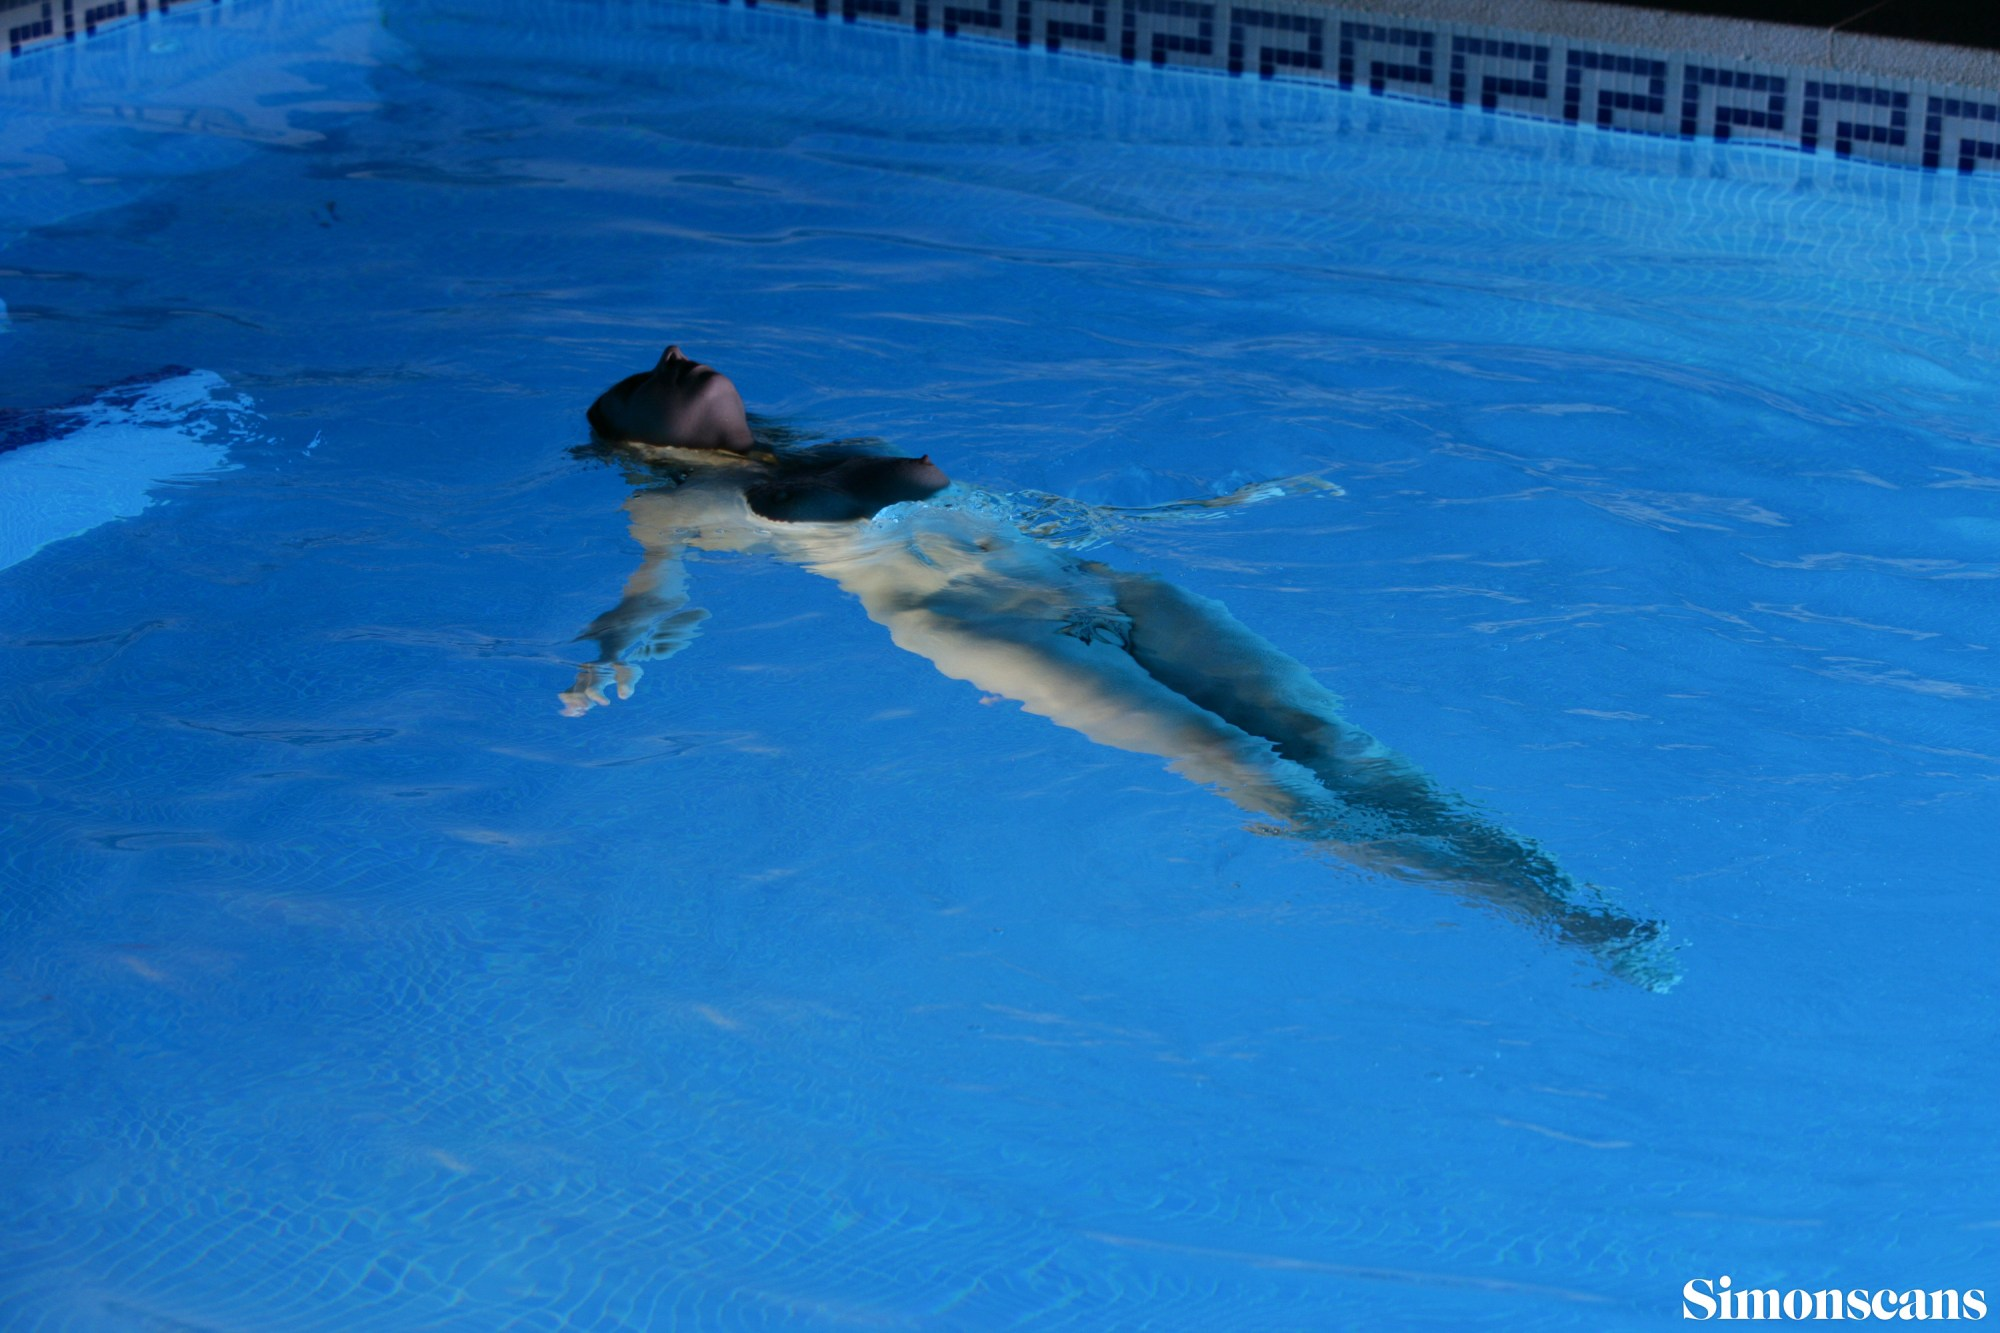 Floating in the pool